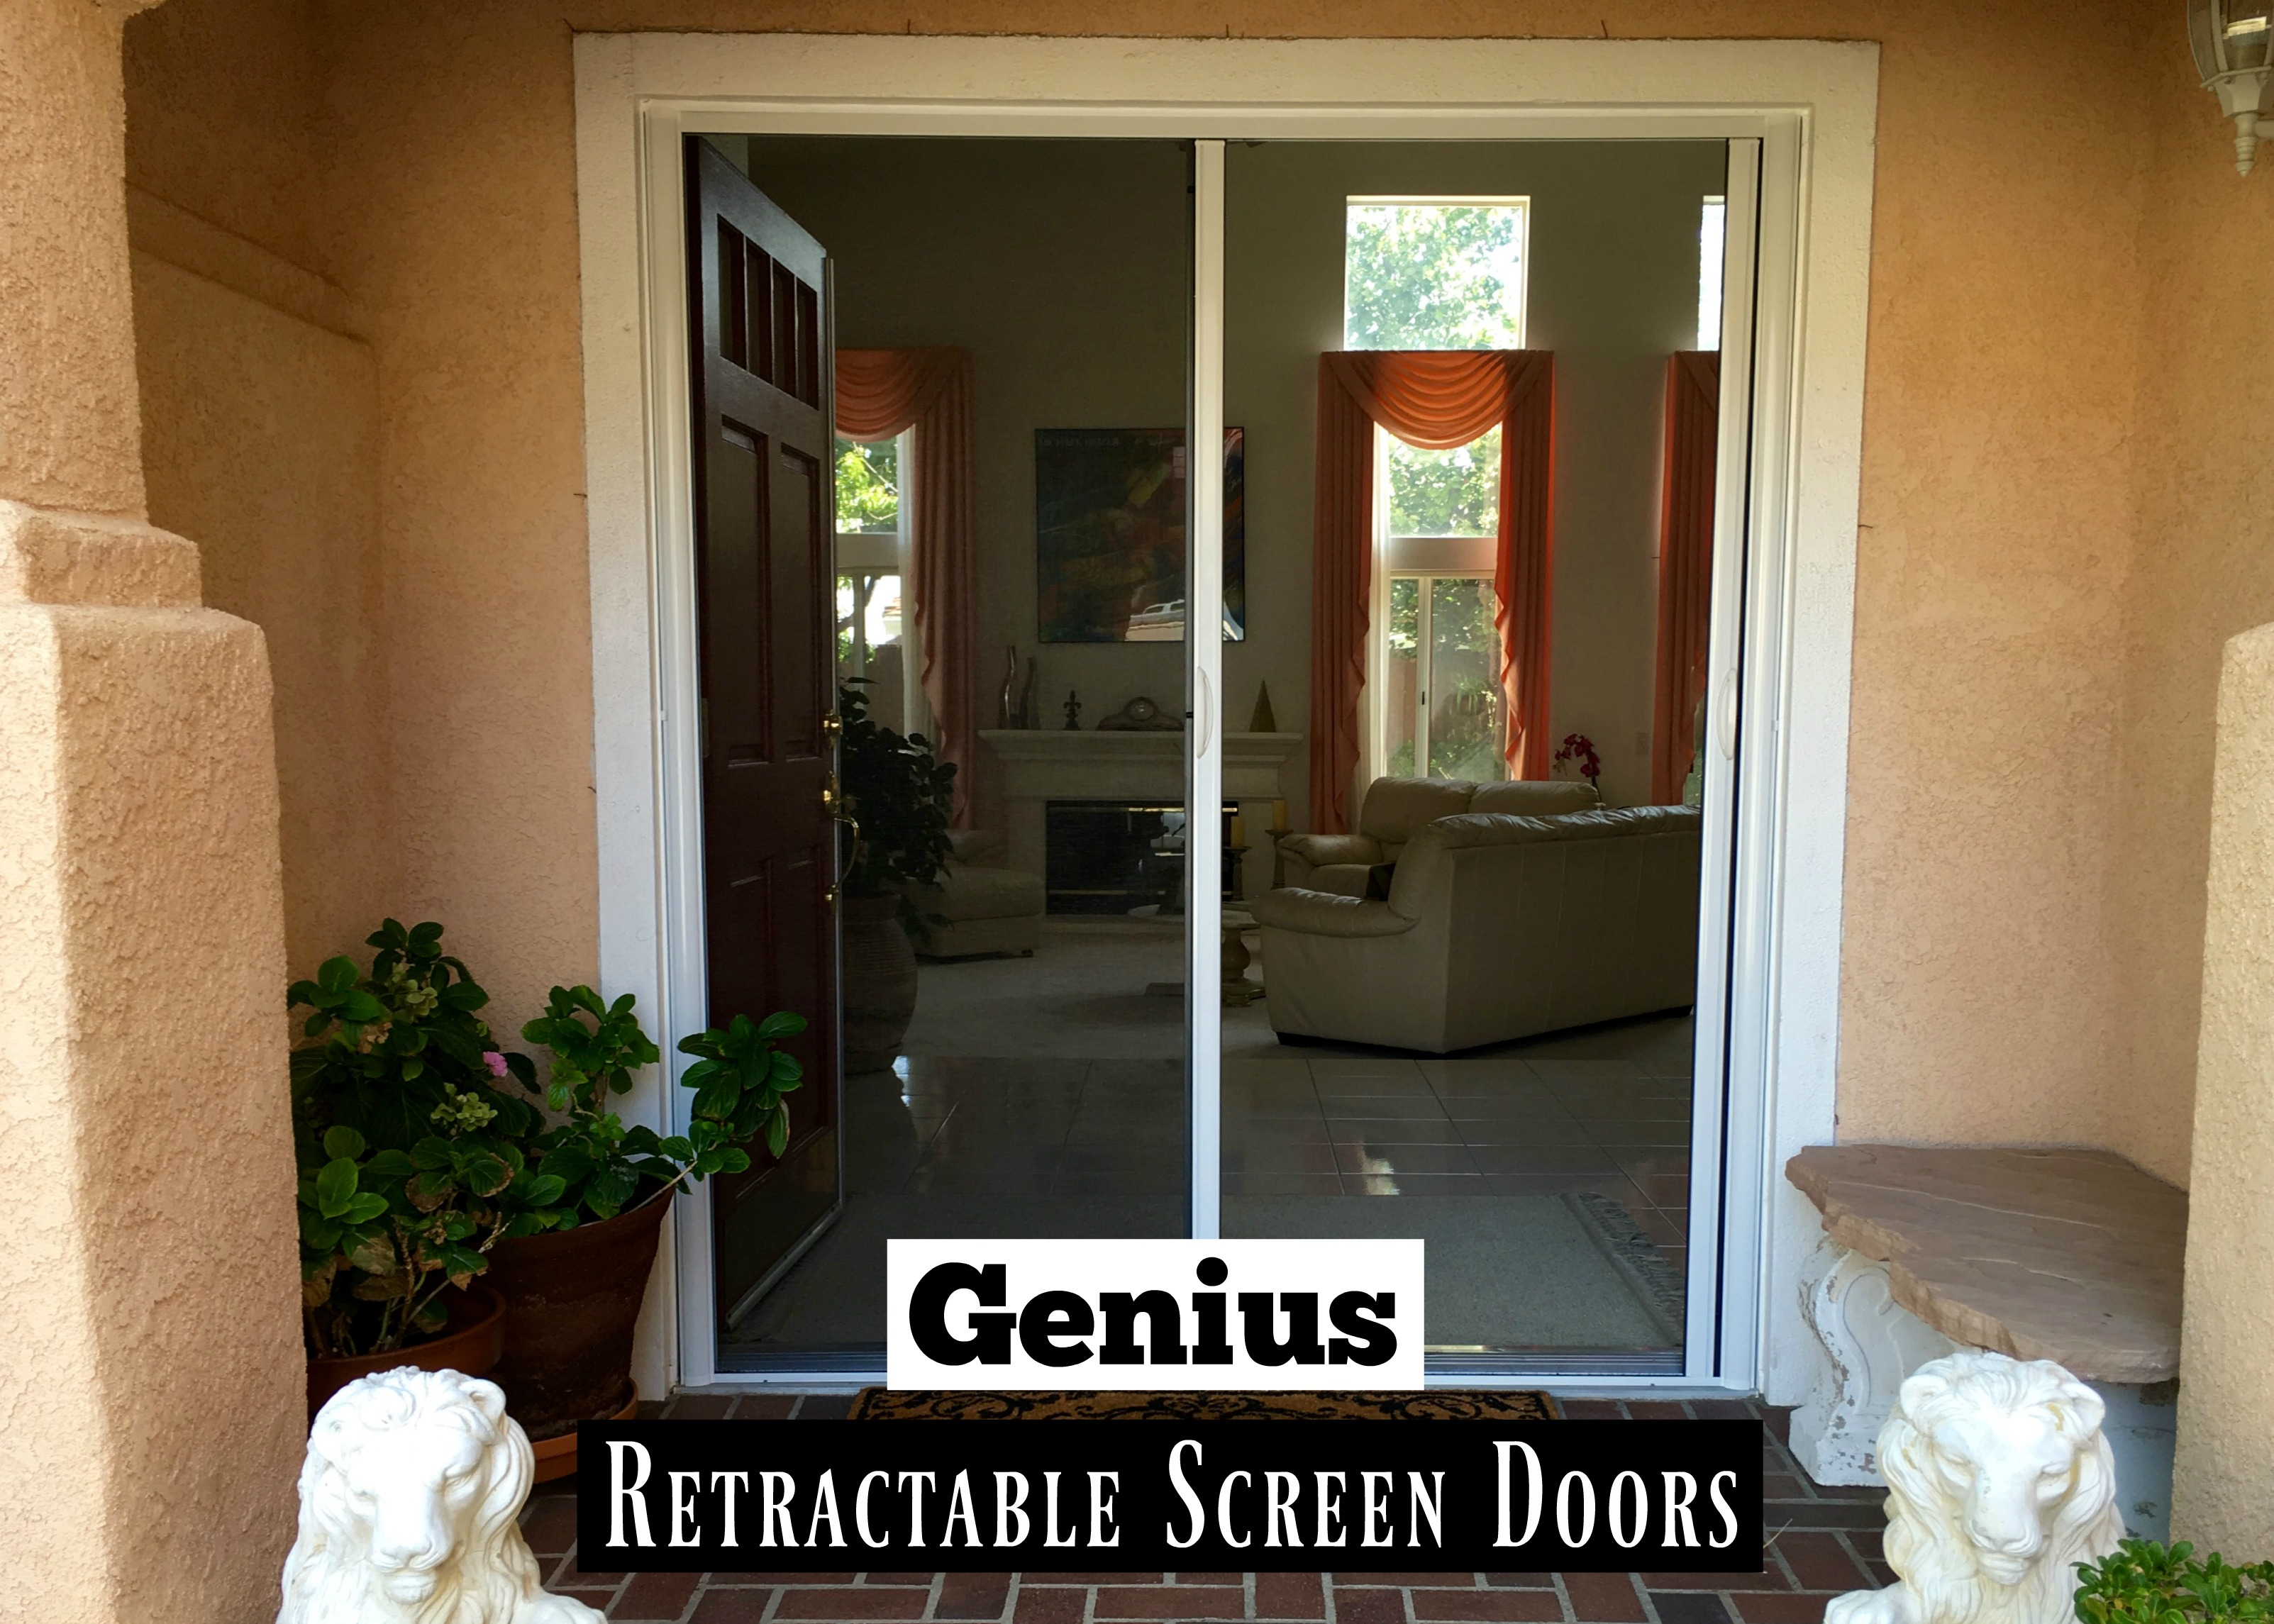 Let the fresh air in with genius retractable screen doors for Genius retractable screen